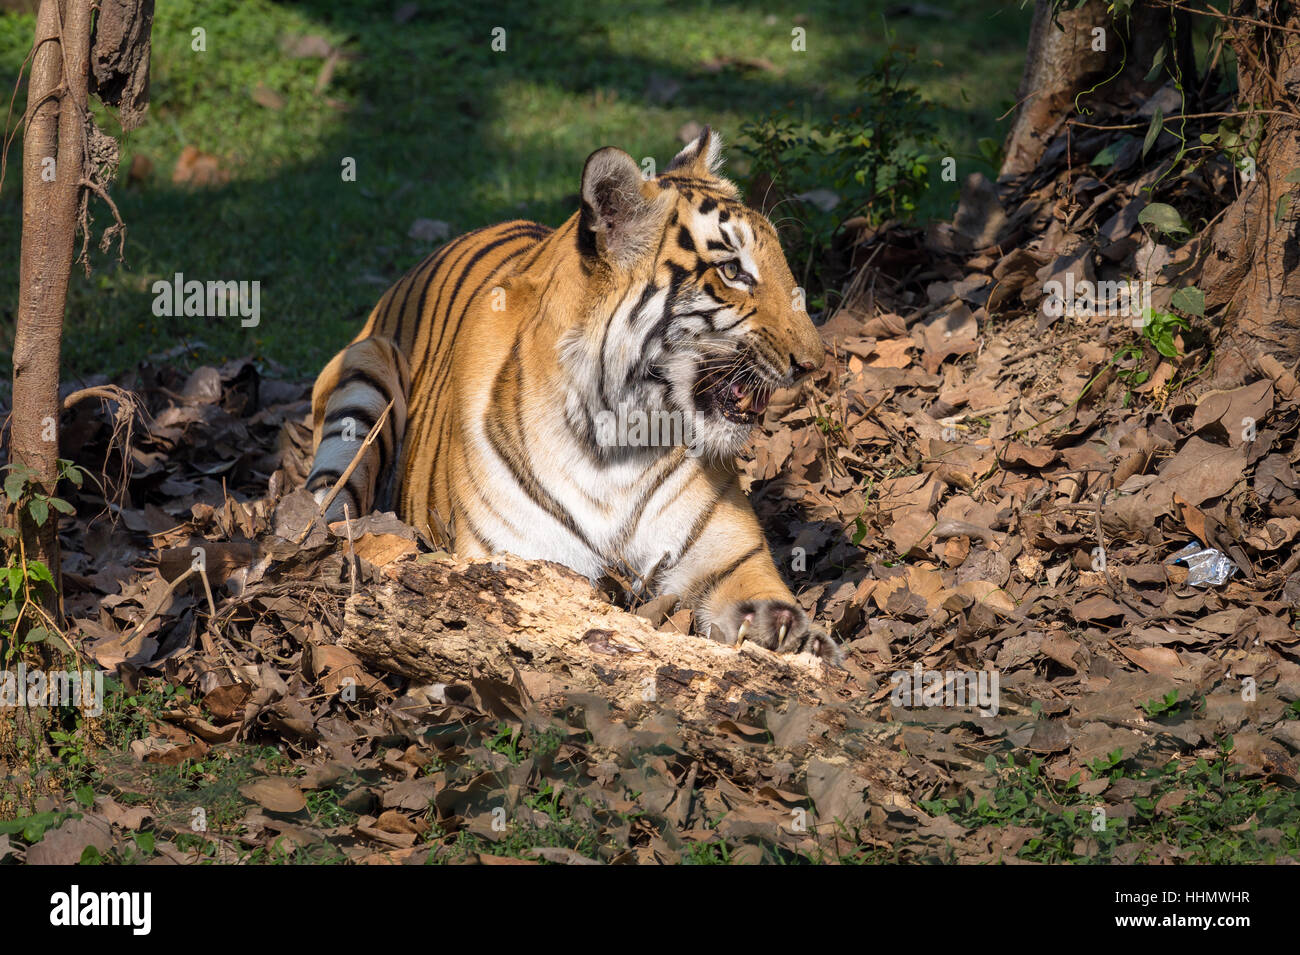 The Bengal tiger in a natural habitat environment at a wildlife sanctuary in India. - Stock Image